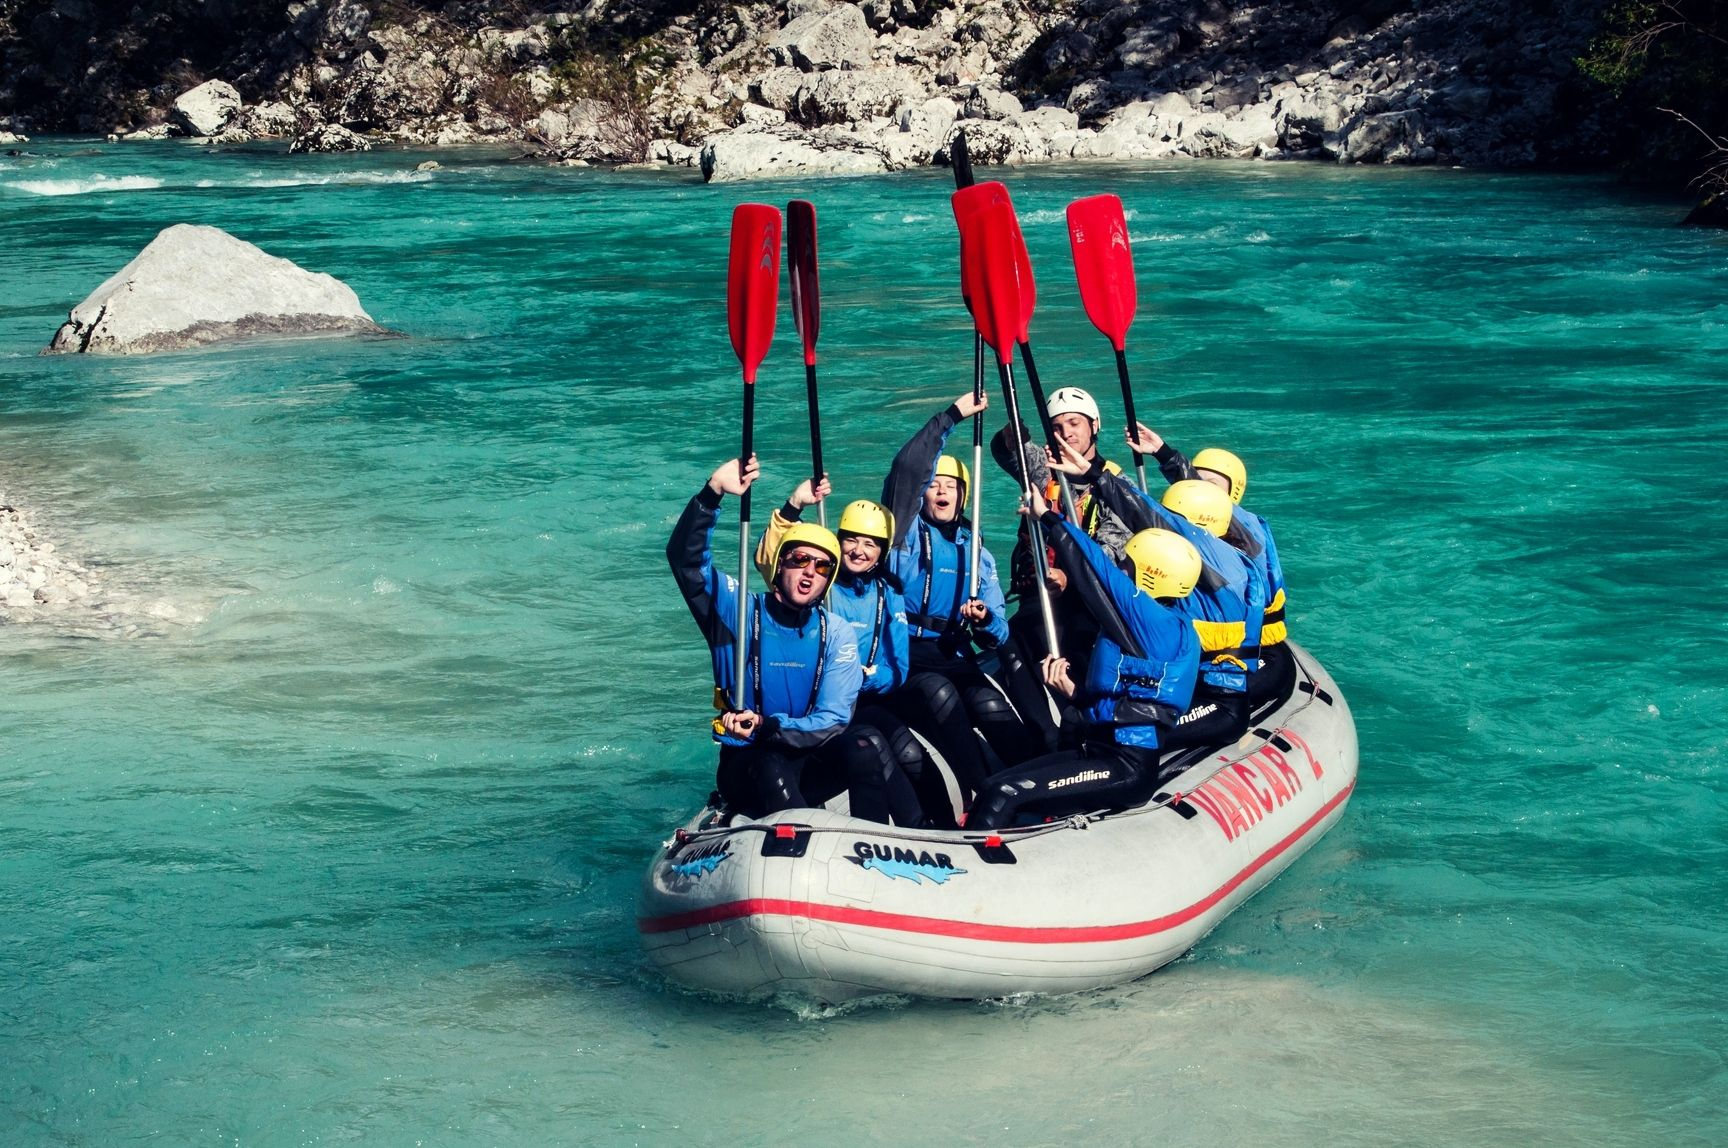 Family Rafting in Bovec Bovec, Triglav National Park, Slovenia #0a9443d8-ba77-4afa-83b5-6836be396ae1